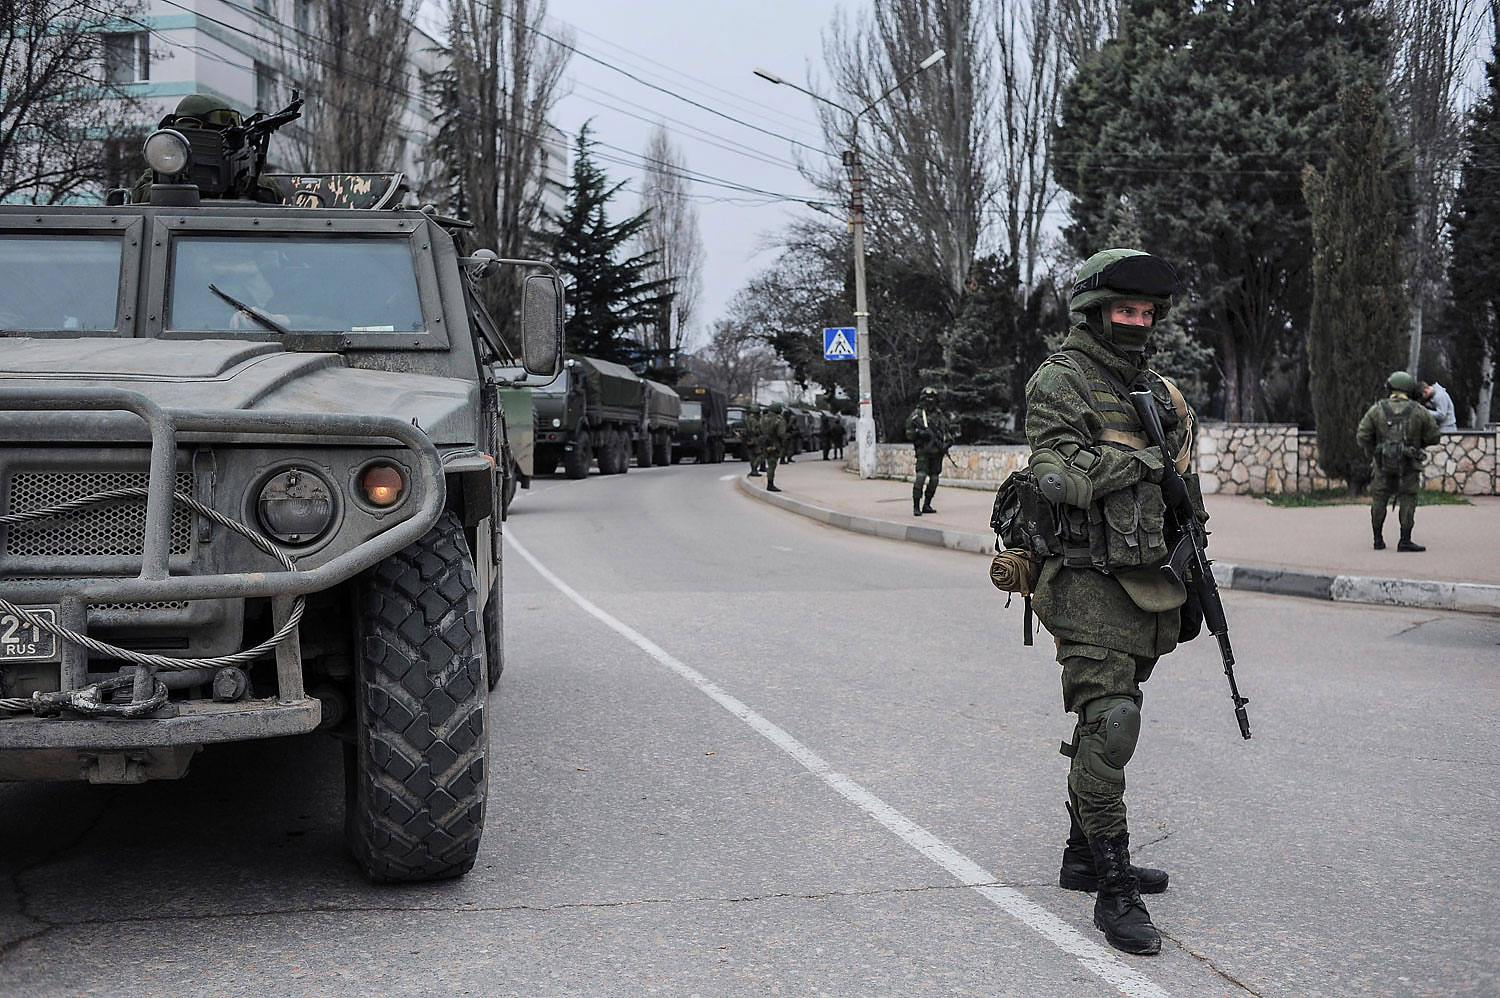 Troops in unmarked uniforms stand guard in Balaklava on the outskirts of Sevastopol, Ukraine, March 1, 2014.